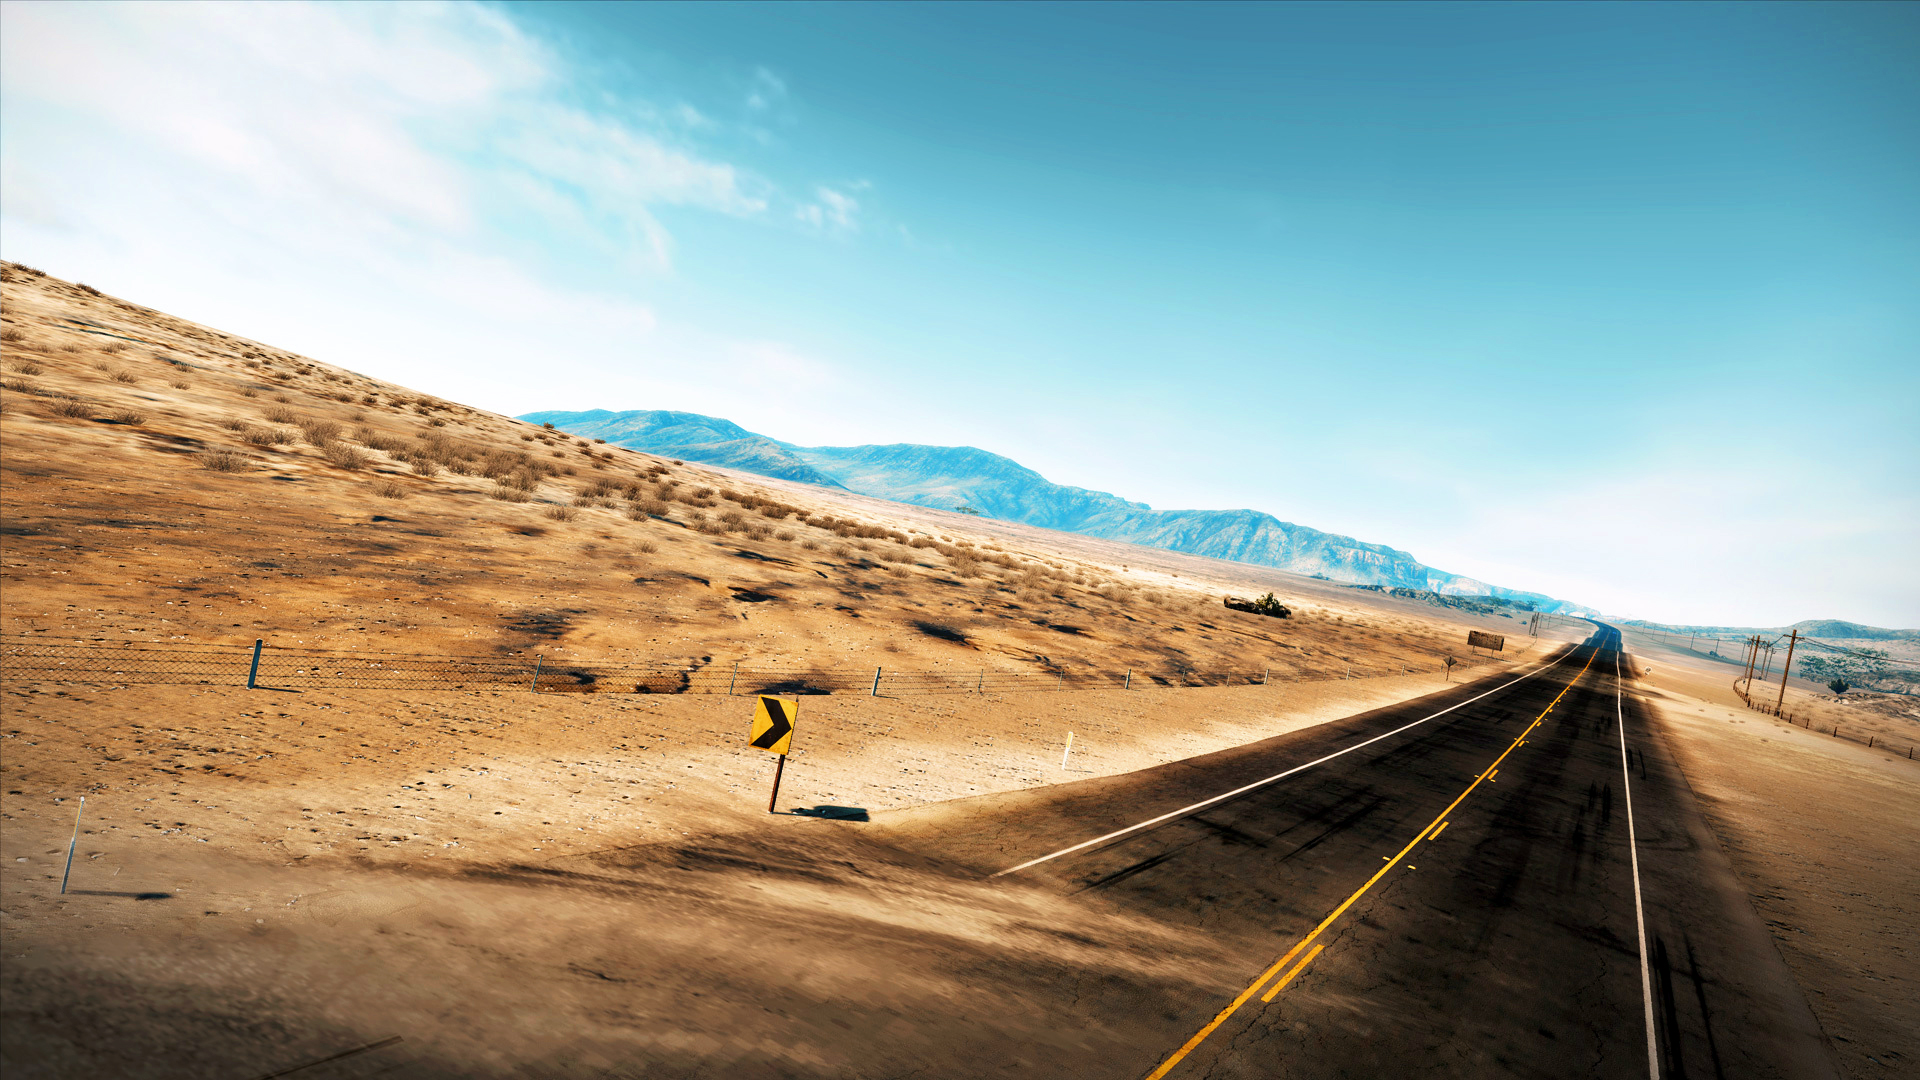 Free Download Desert Road Background Hd Wallpapers